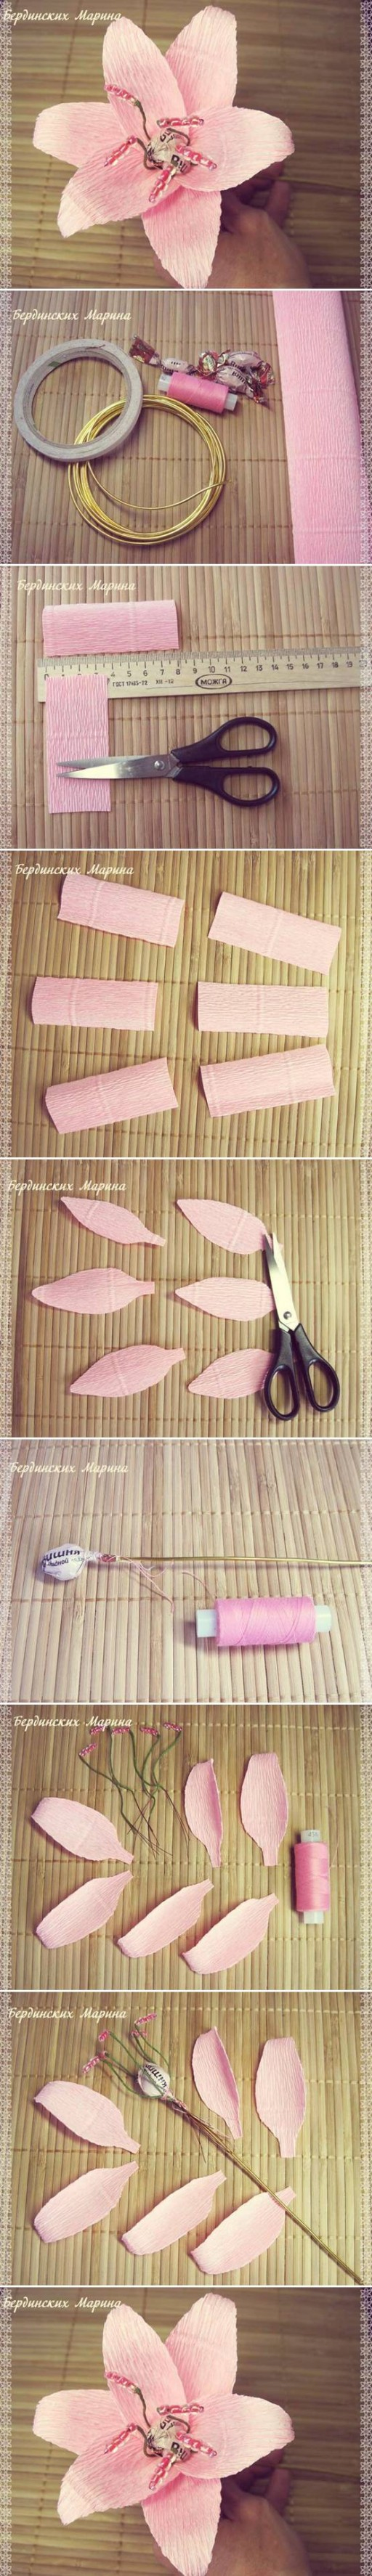 How to make Gentle Lily Flowers DIY tutorial instructions